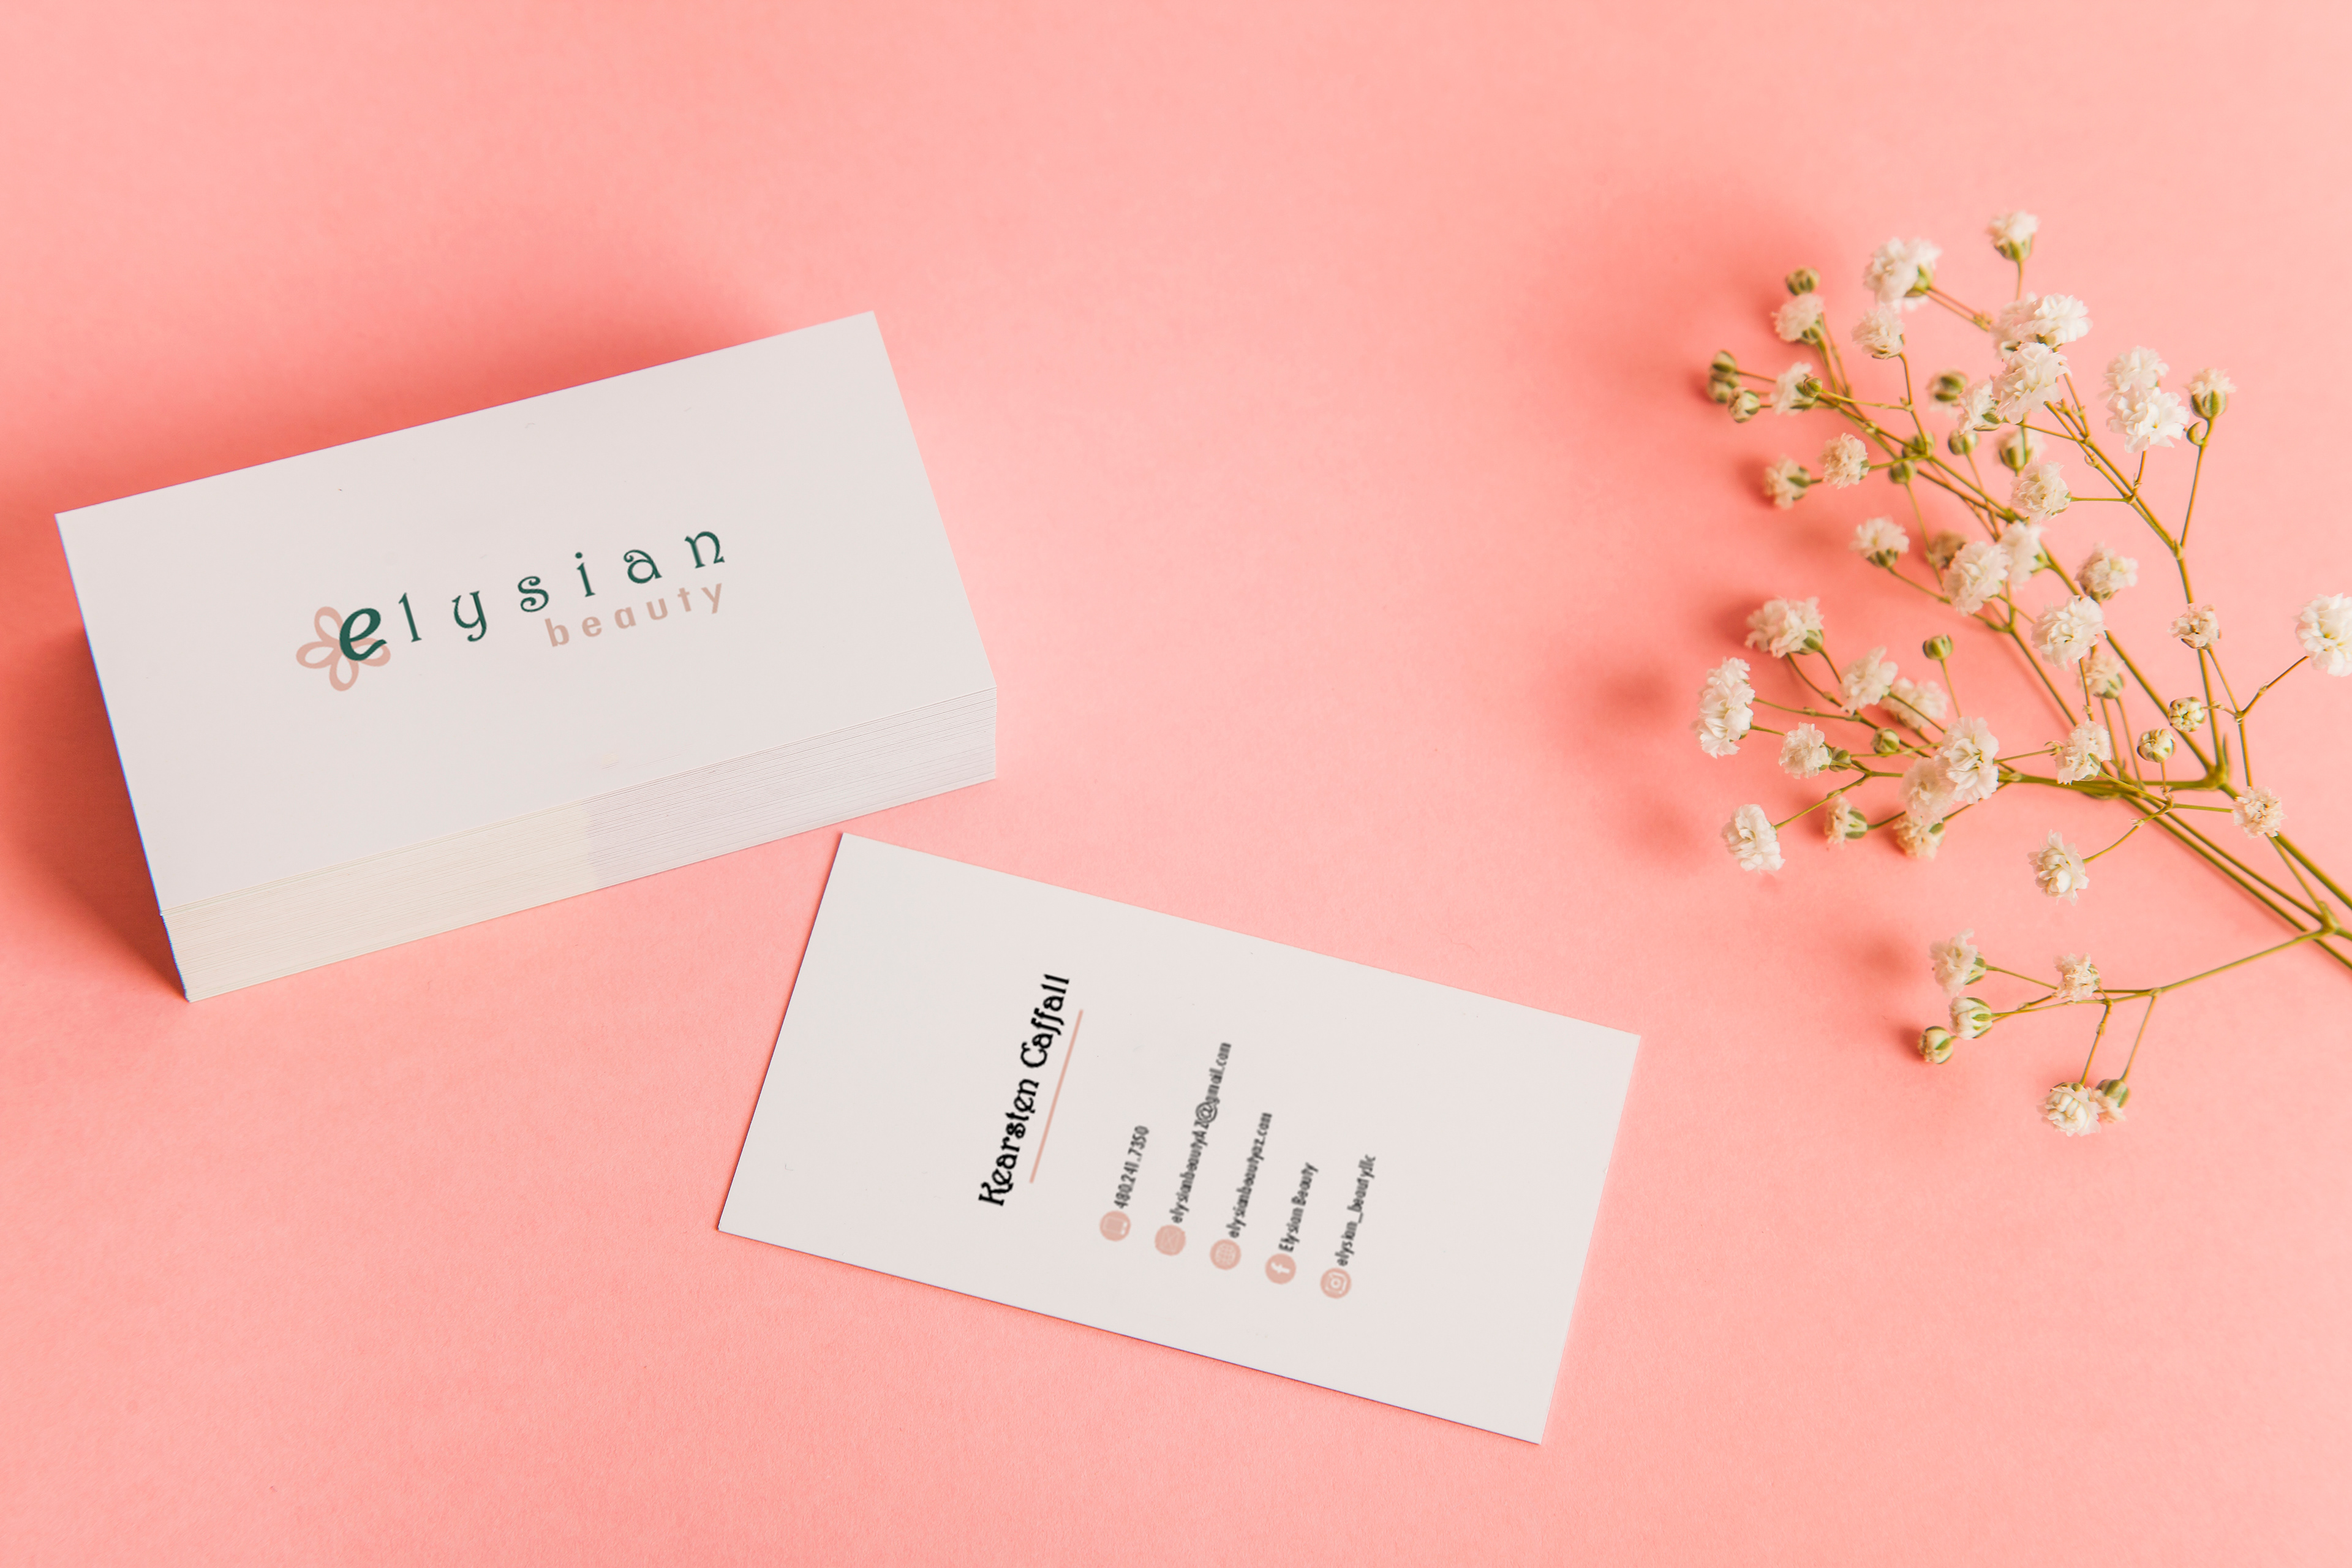 Brittany Del Bianco Elysian Beauty Business Cards